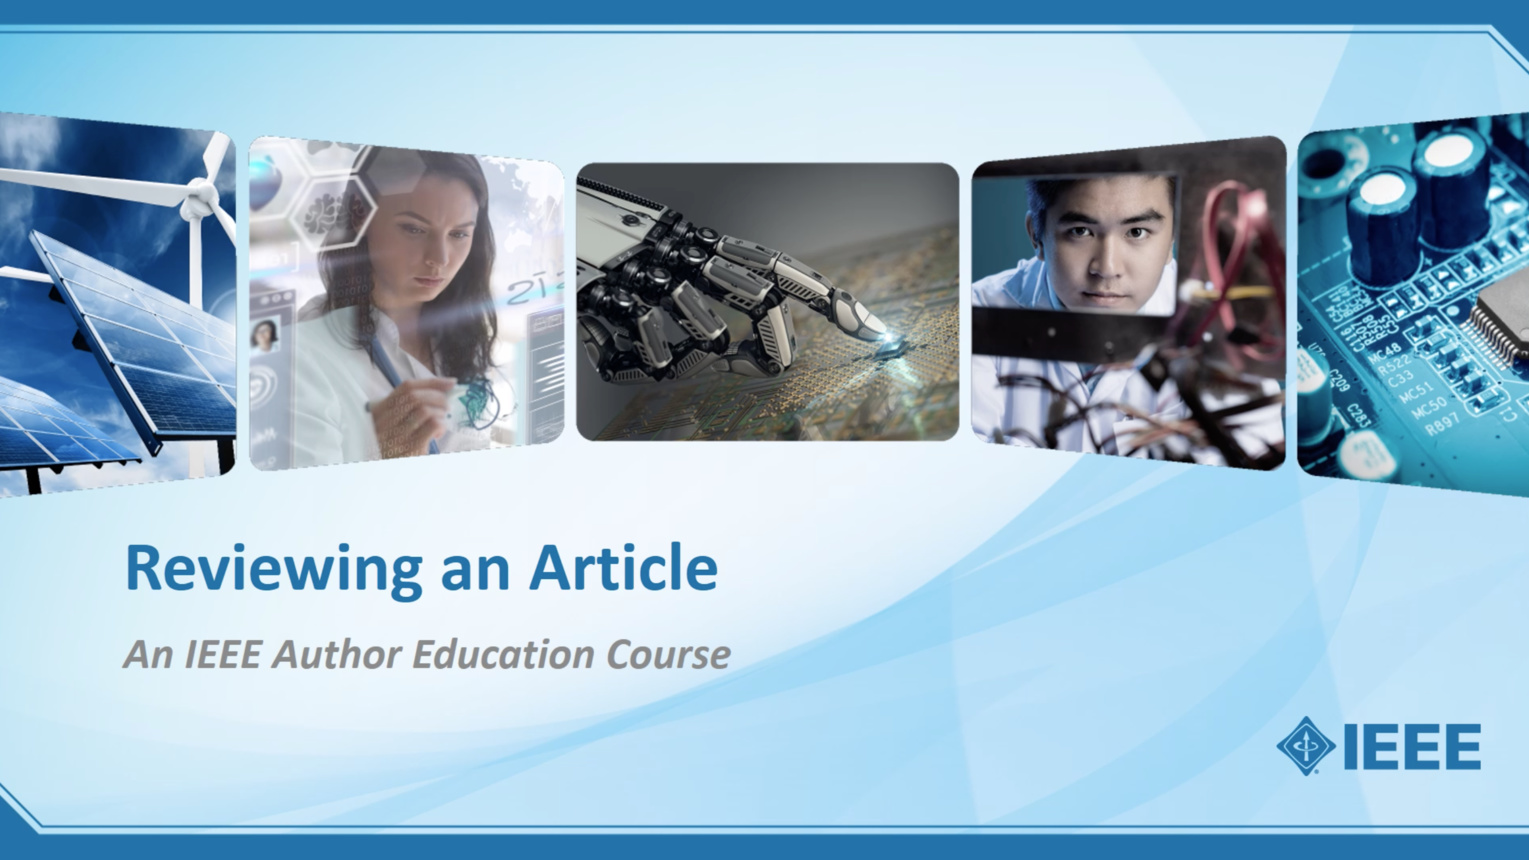 Reviewing an Article: IEEE Author Education